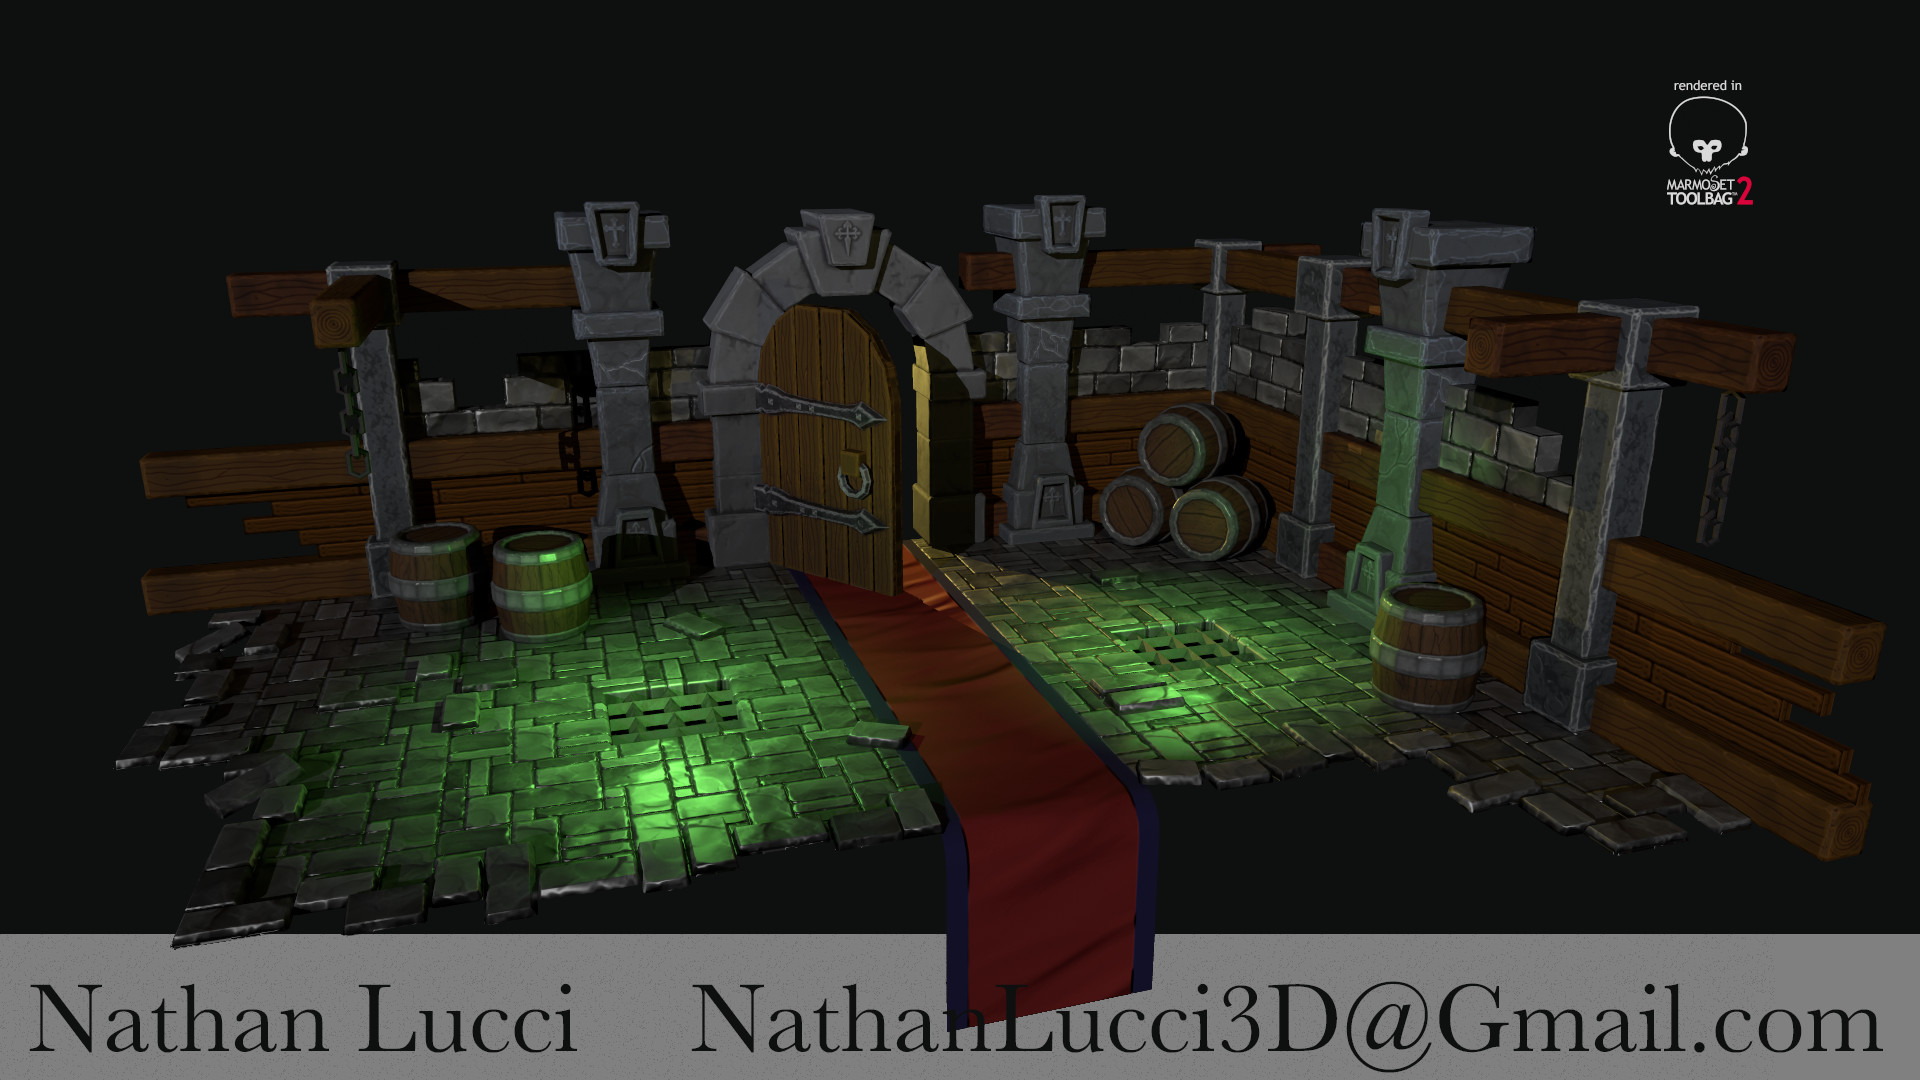 Nathan lucci dungeonrender